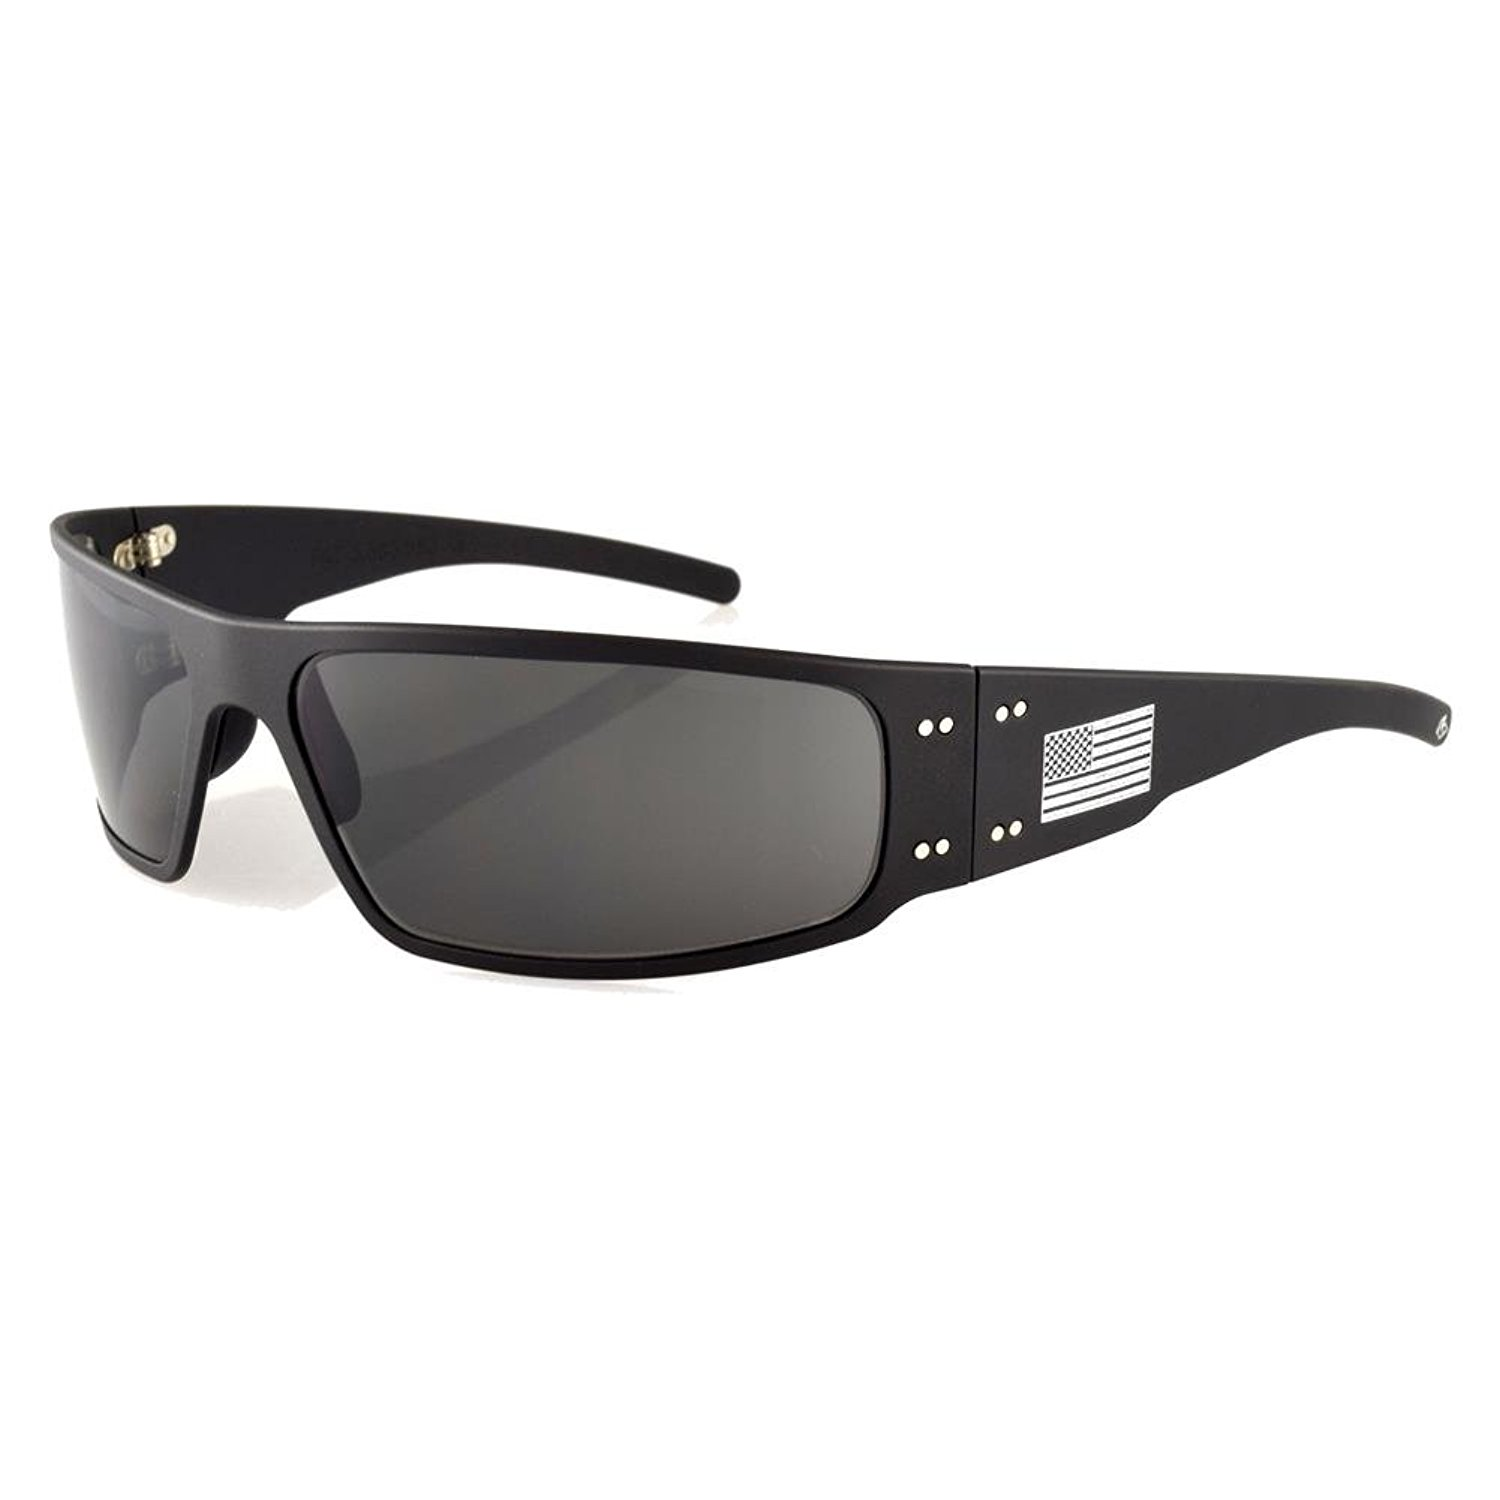 8b081dbf054 Details about New Gatorz Magnum Sunglasses Black Grey and American Flag  with POLARIZED Lens